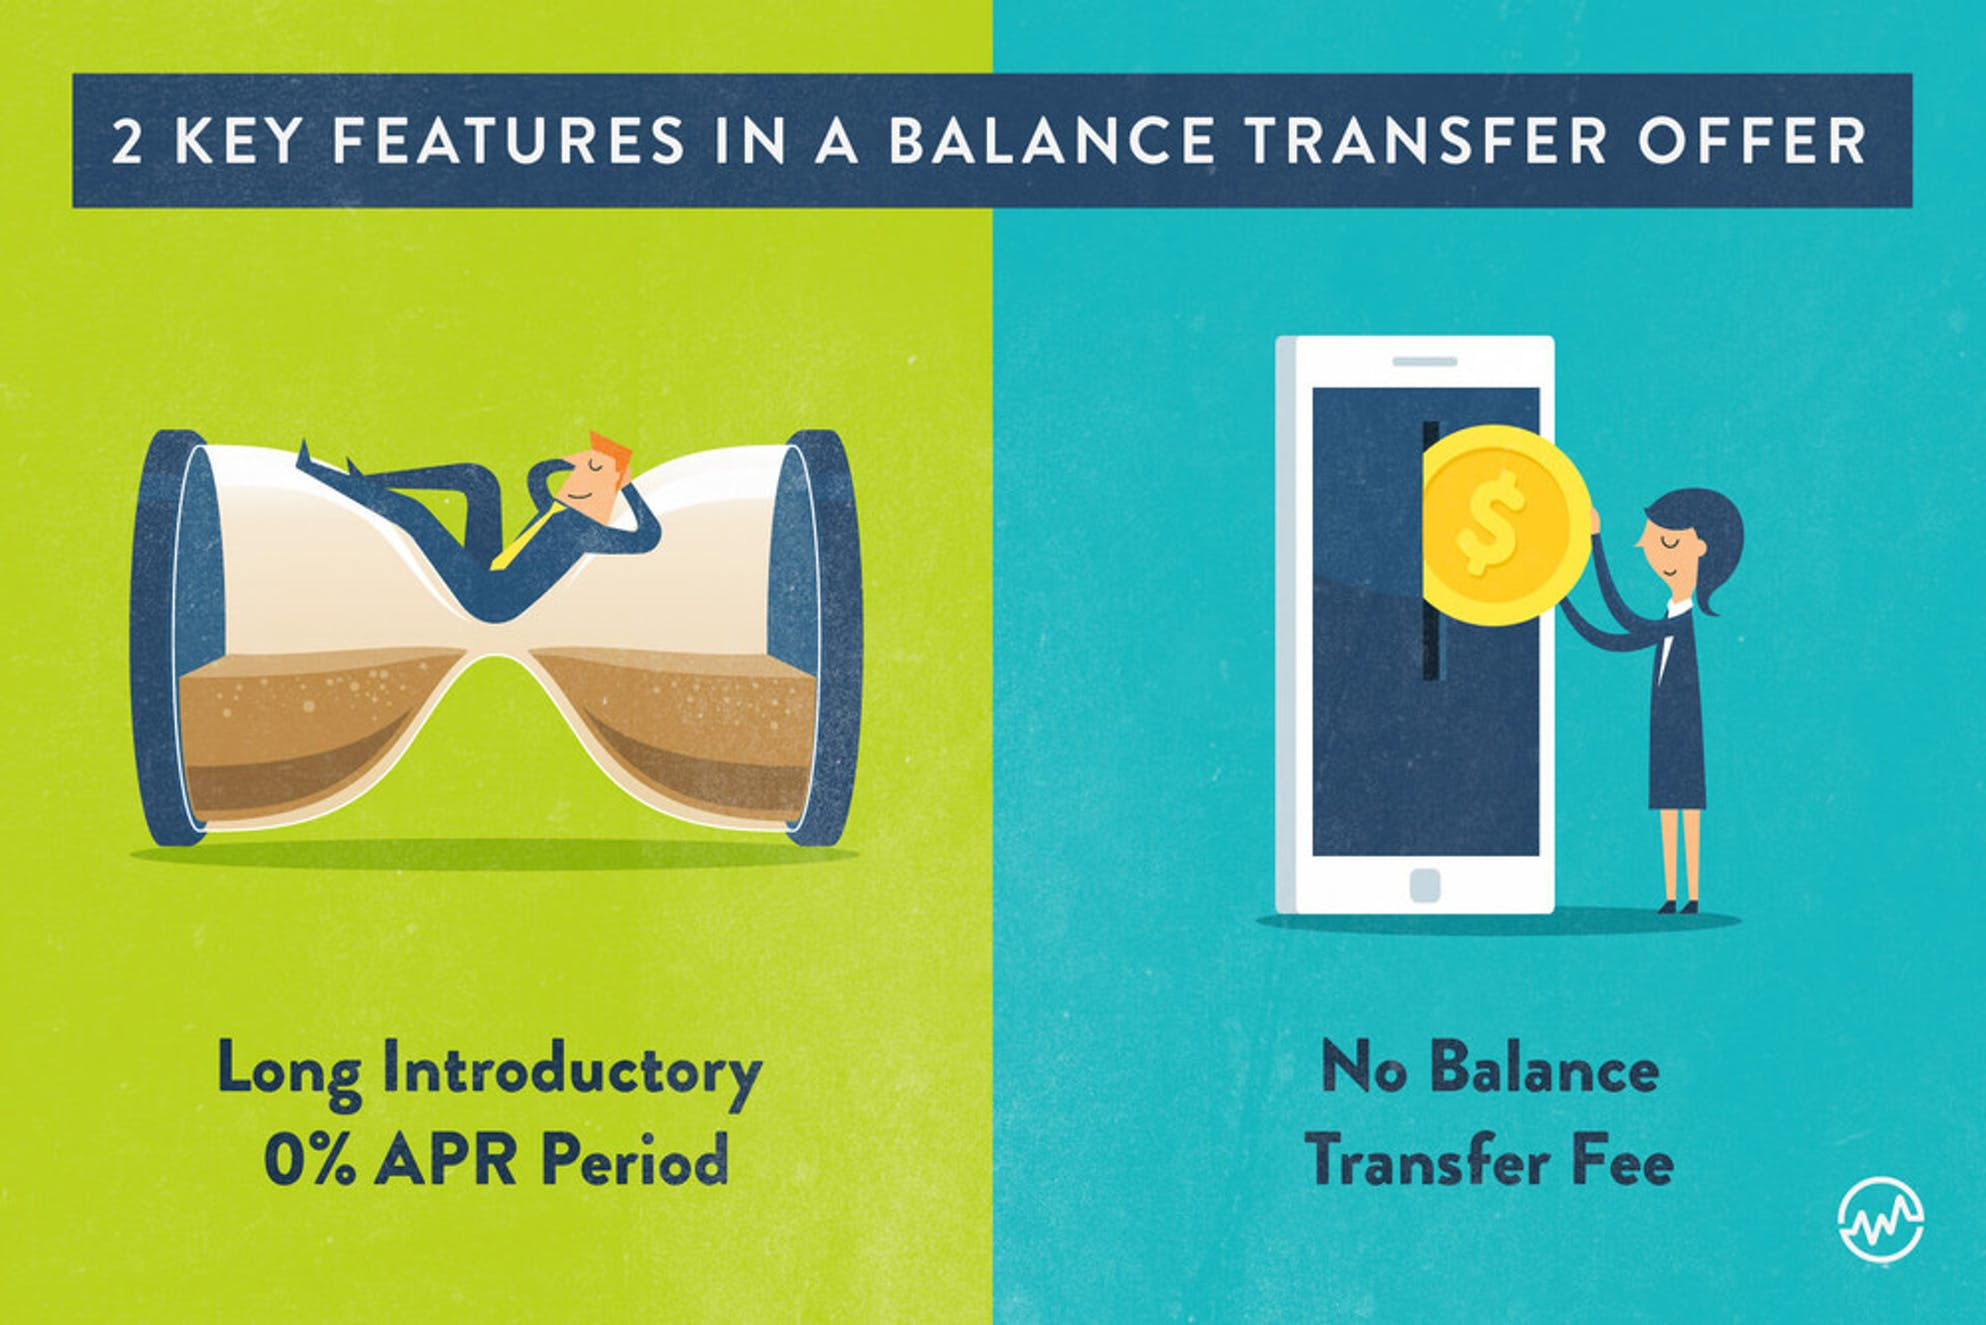 Key features in a balance transfer offer graphics